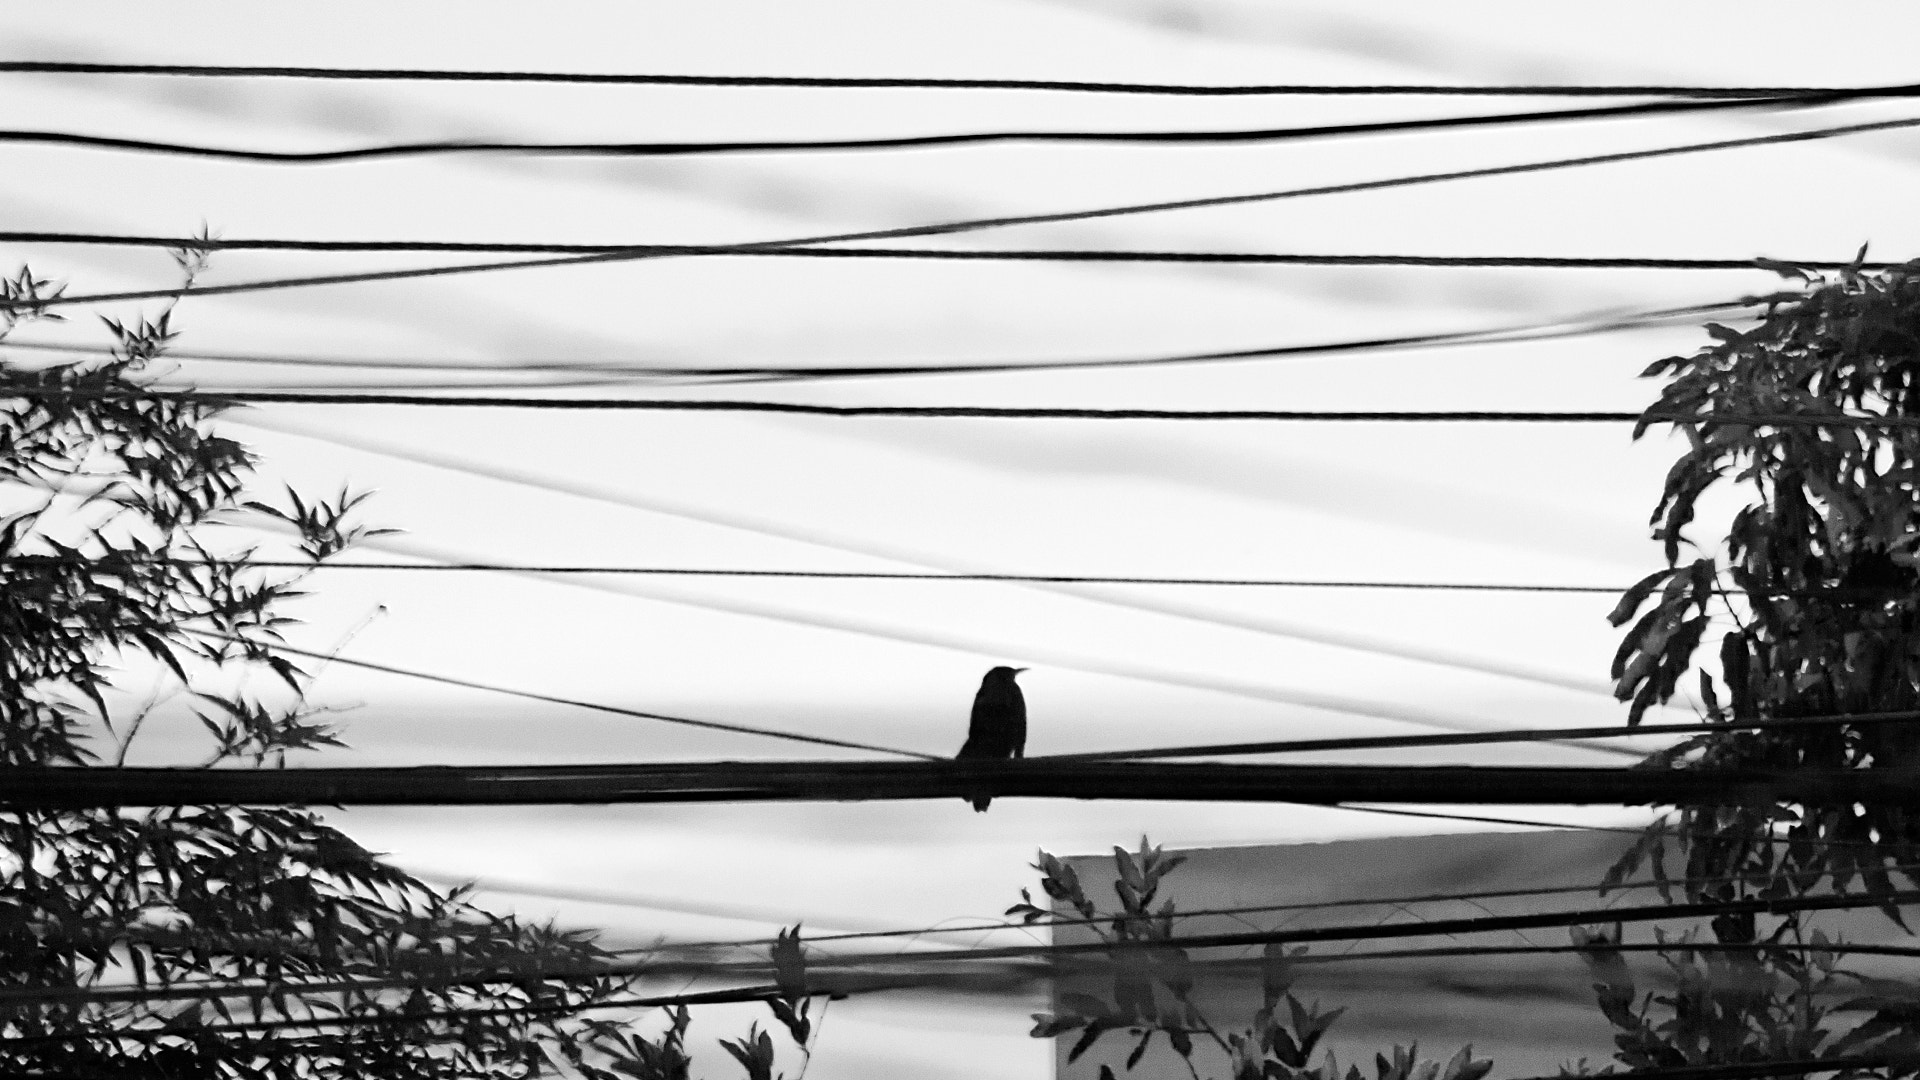 Photograph Bird on wires by Juan Benavides on 500px